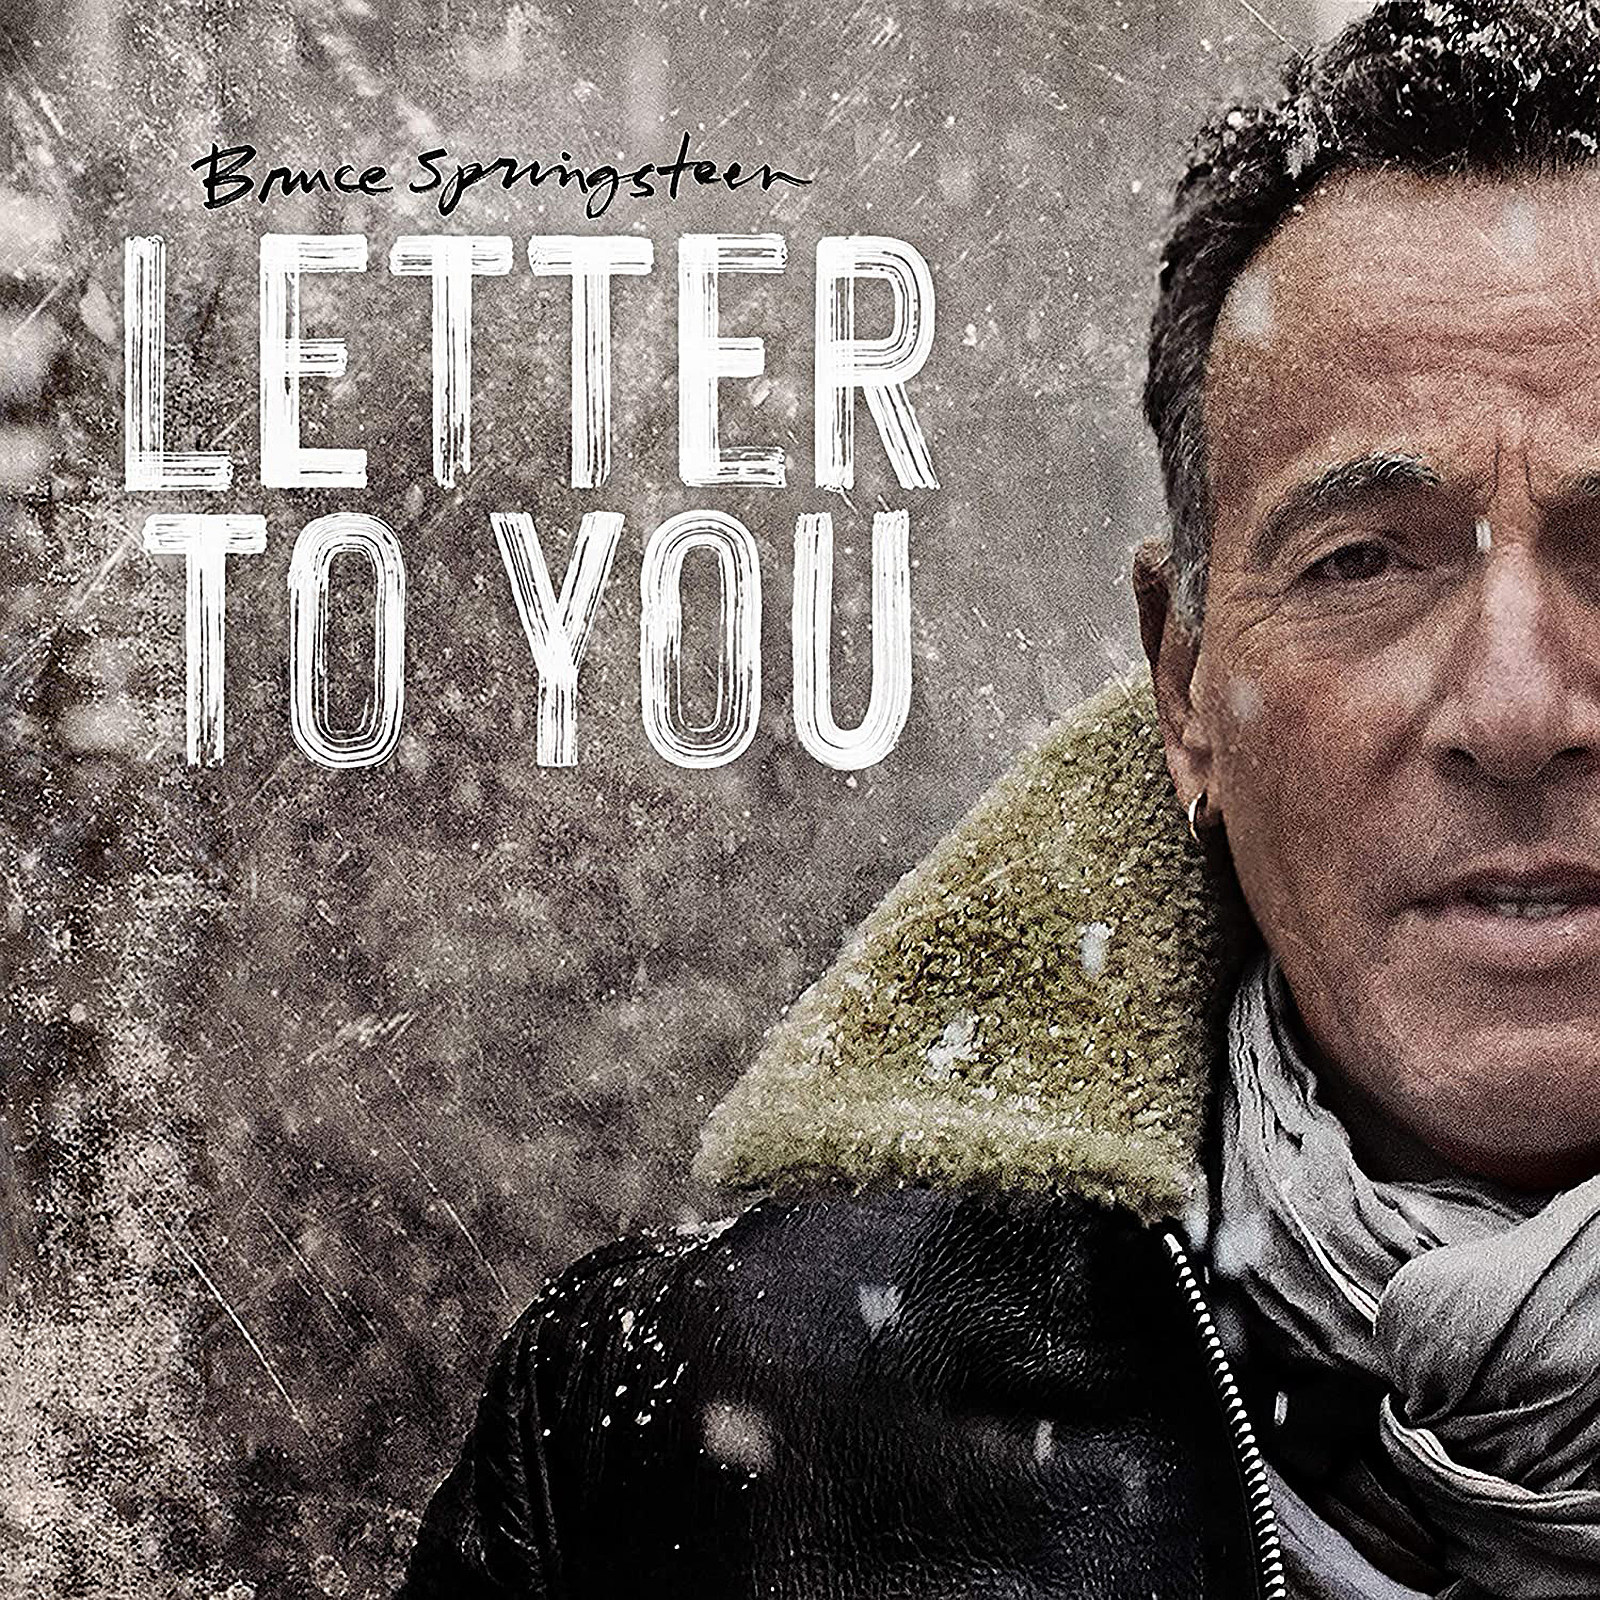 BRUCE SPRINGSTEEN - LETTER TO YOU album artwork